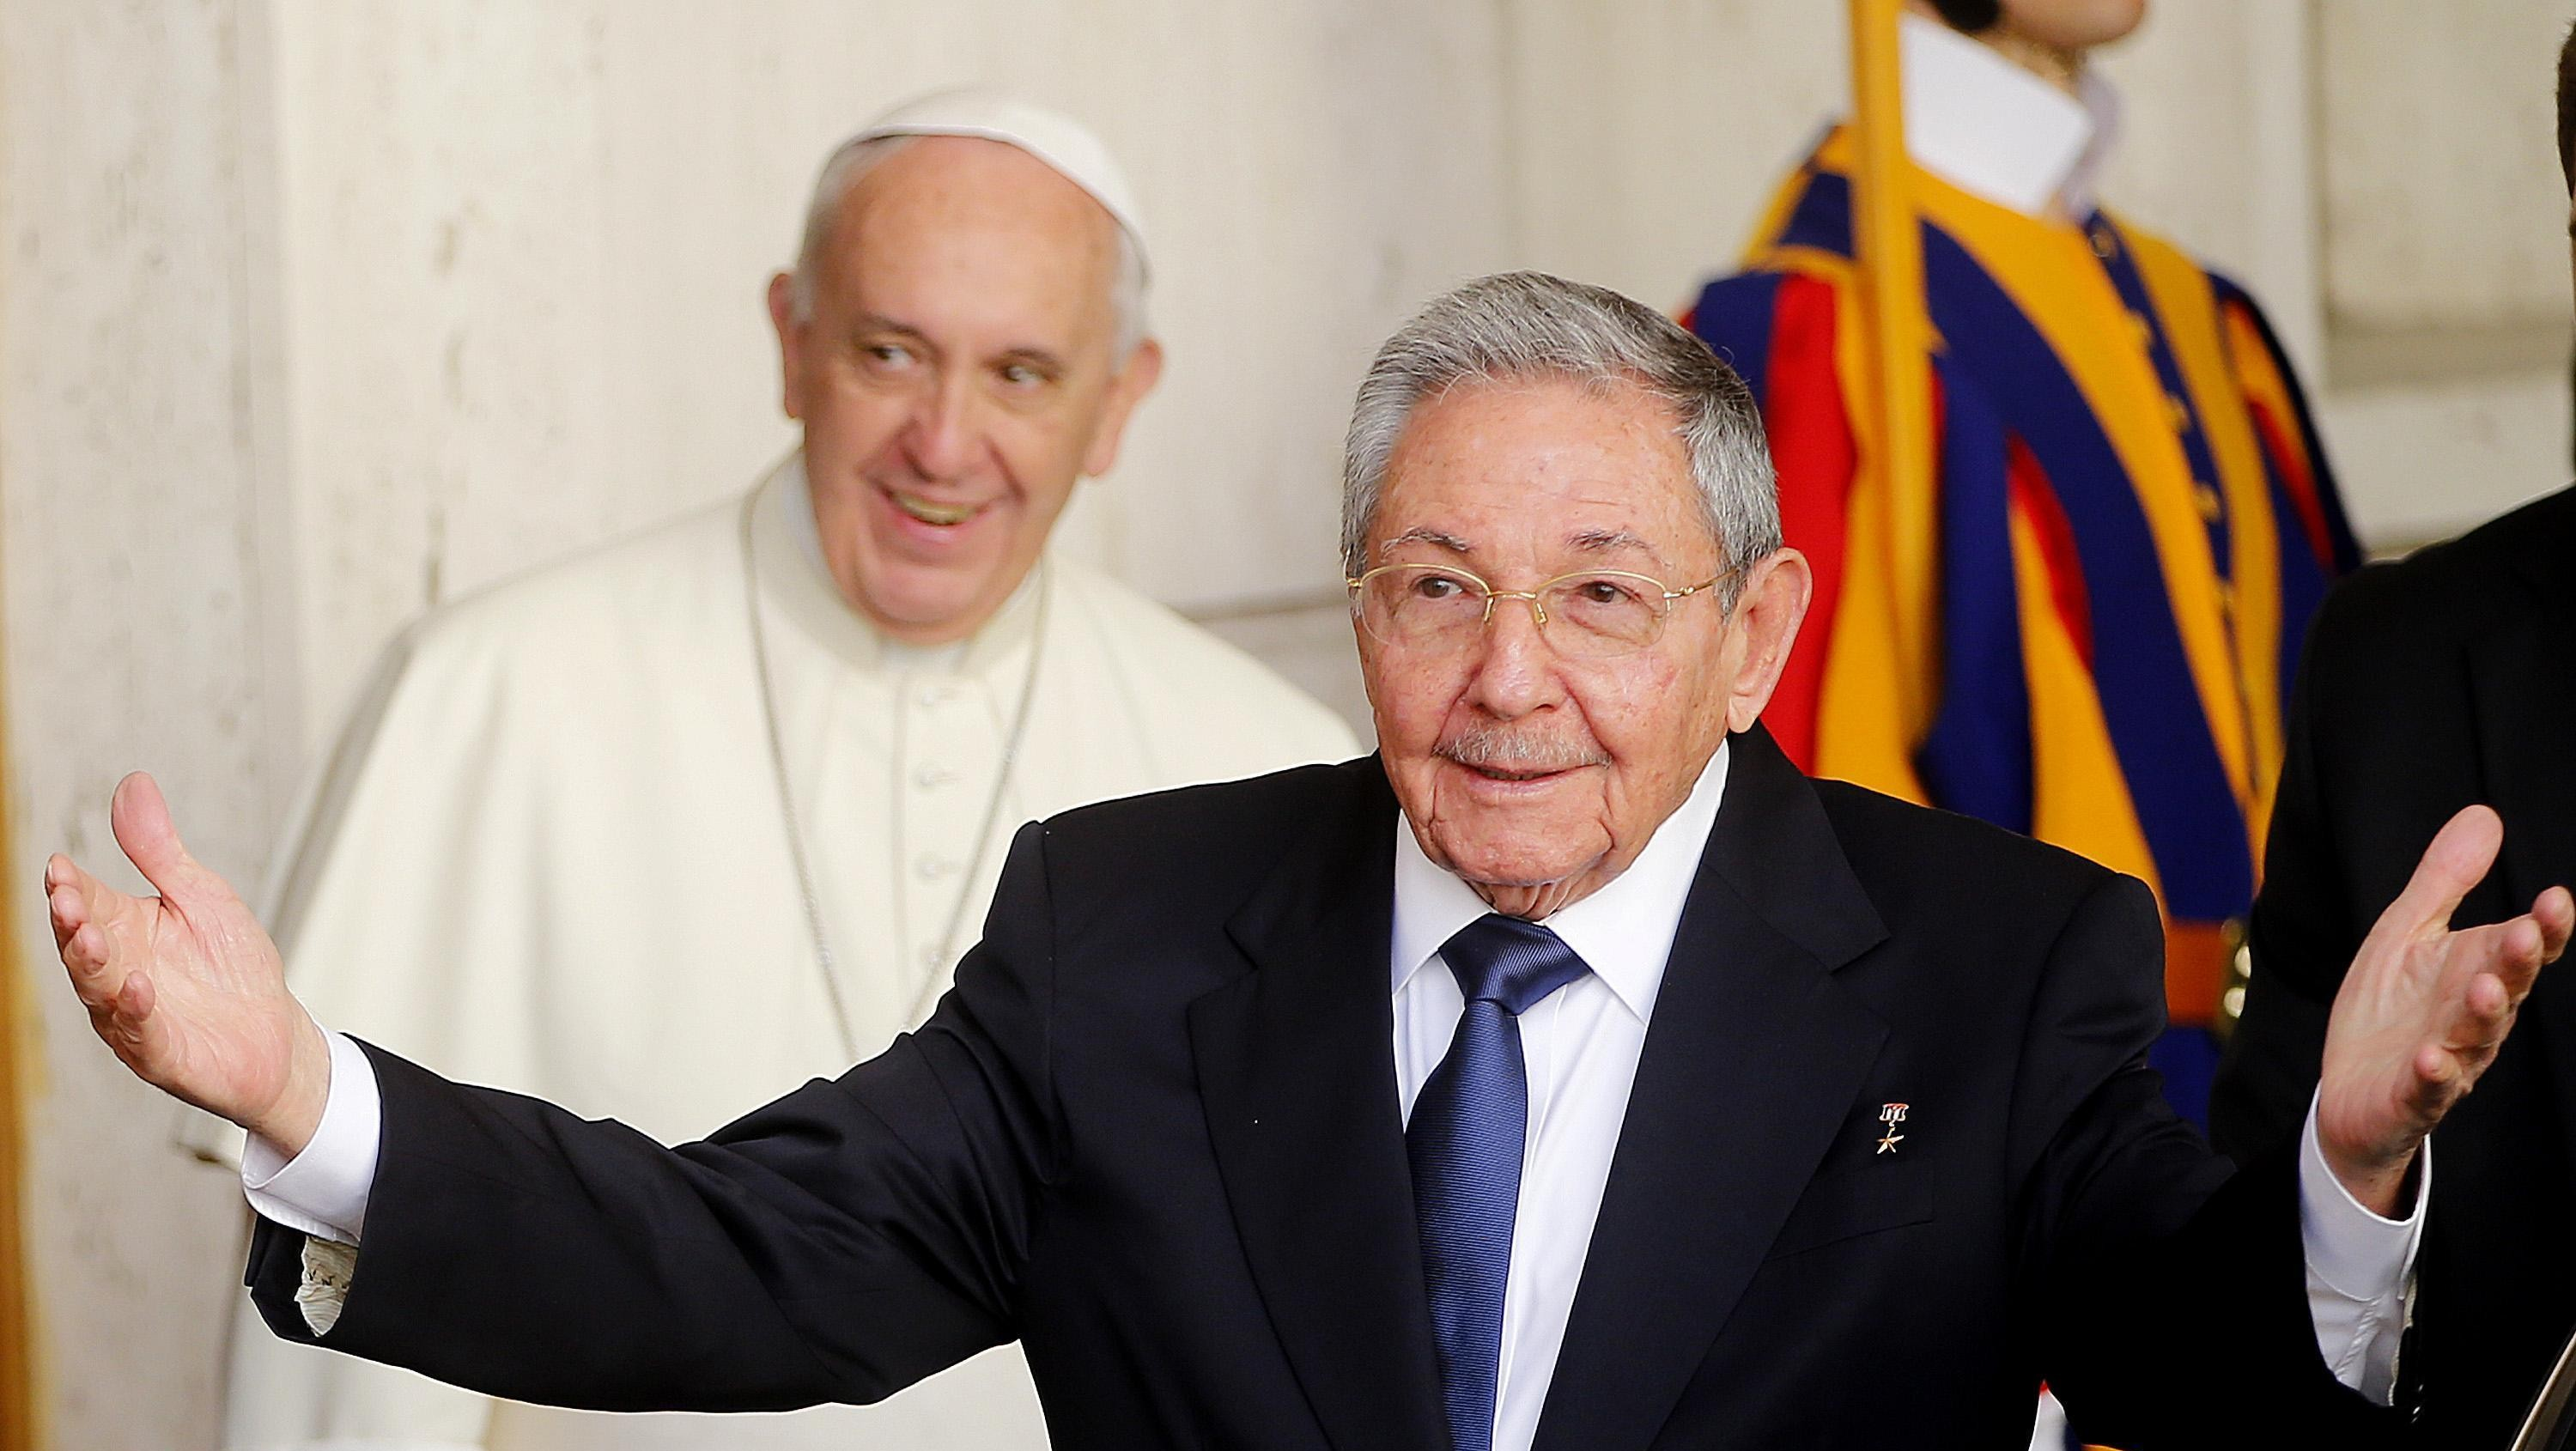 Pope Francis Warms Communist Leader's Heart Ahead of Cuba Visit